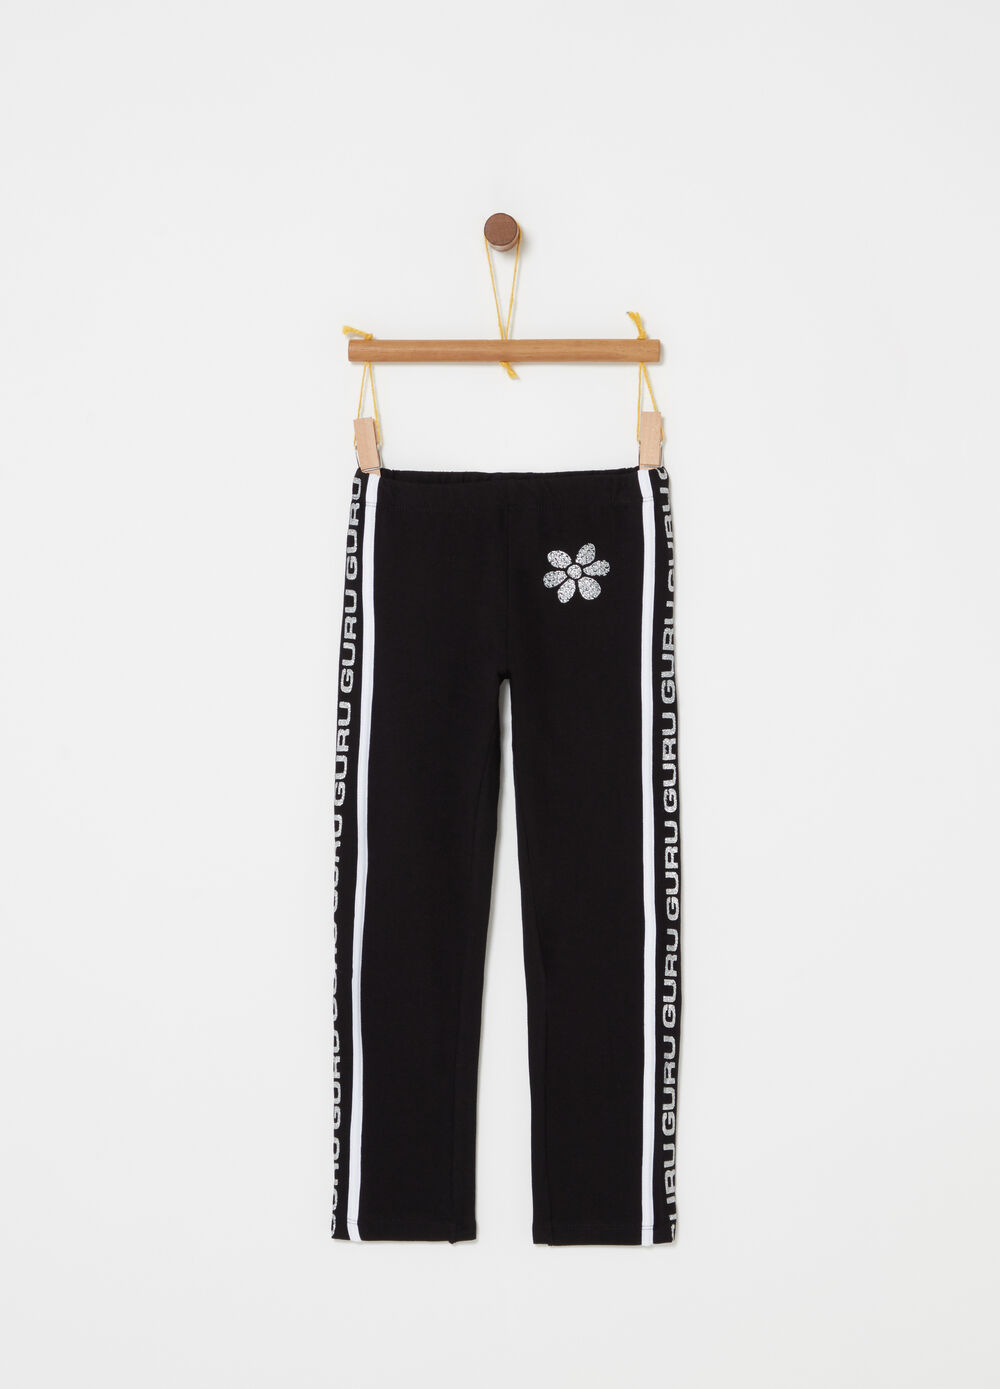 Leggings with print, diamantés and glitter